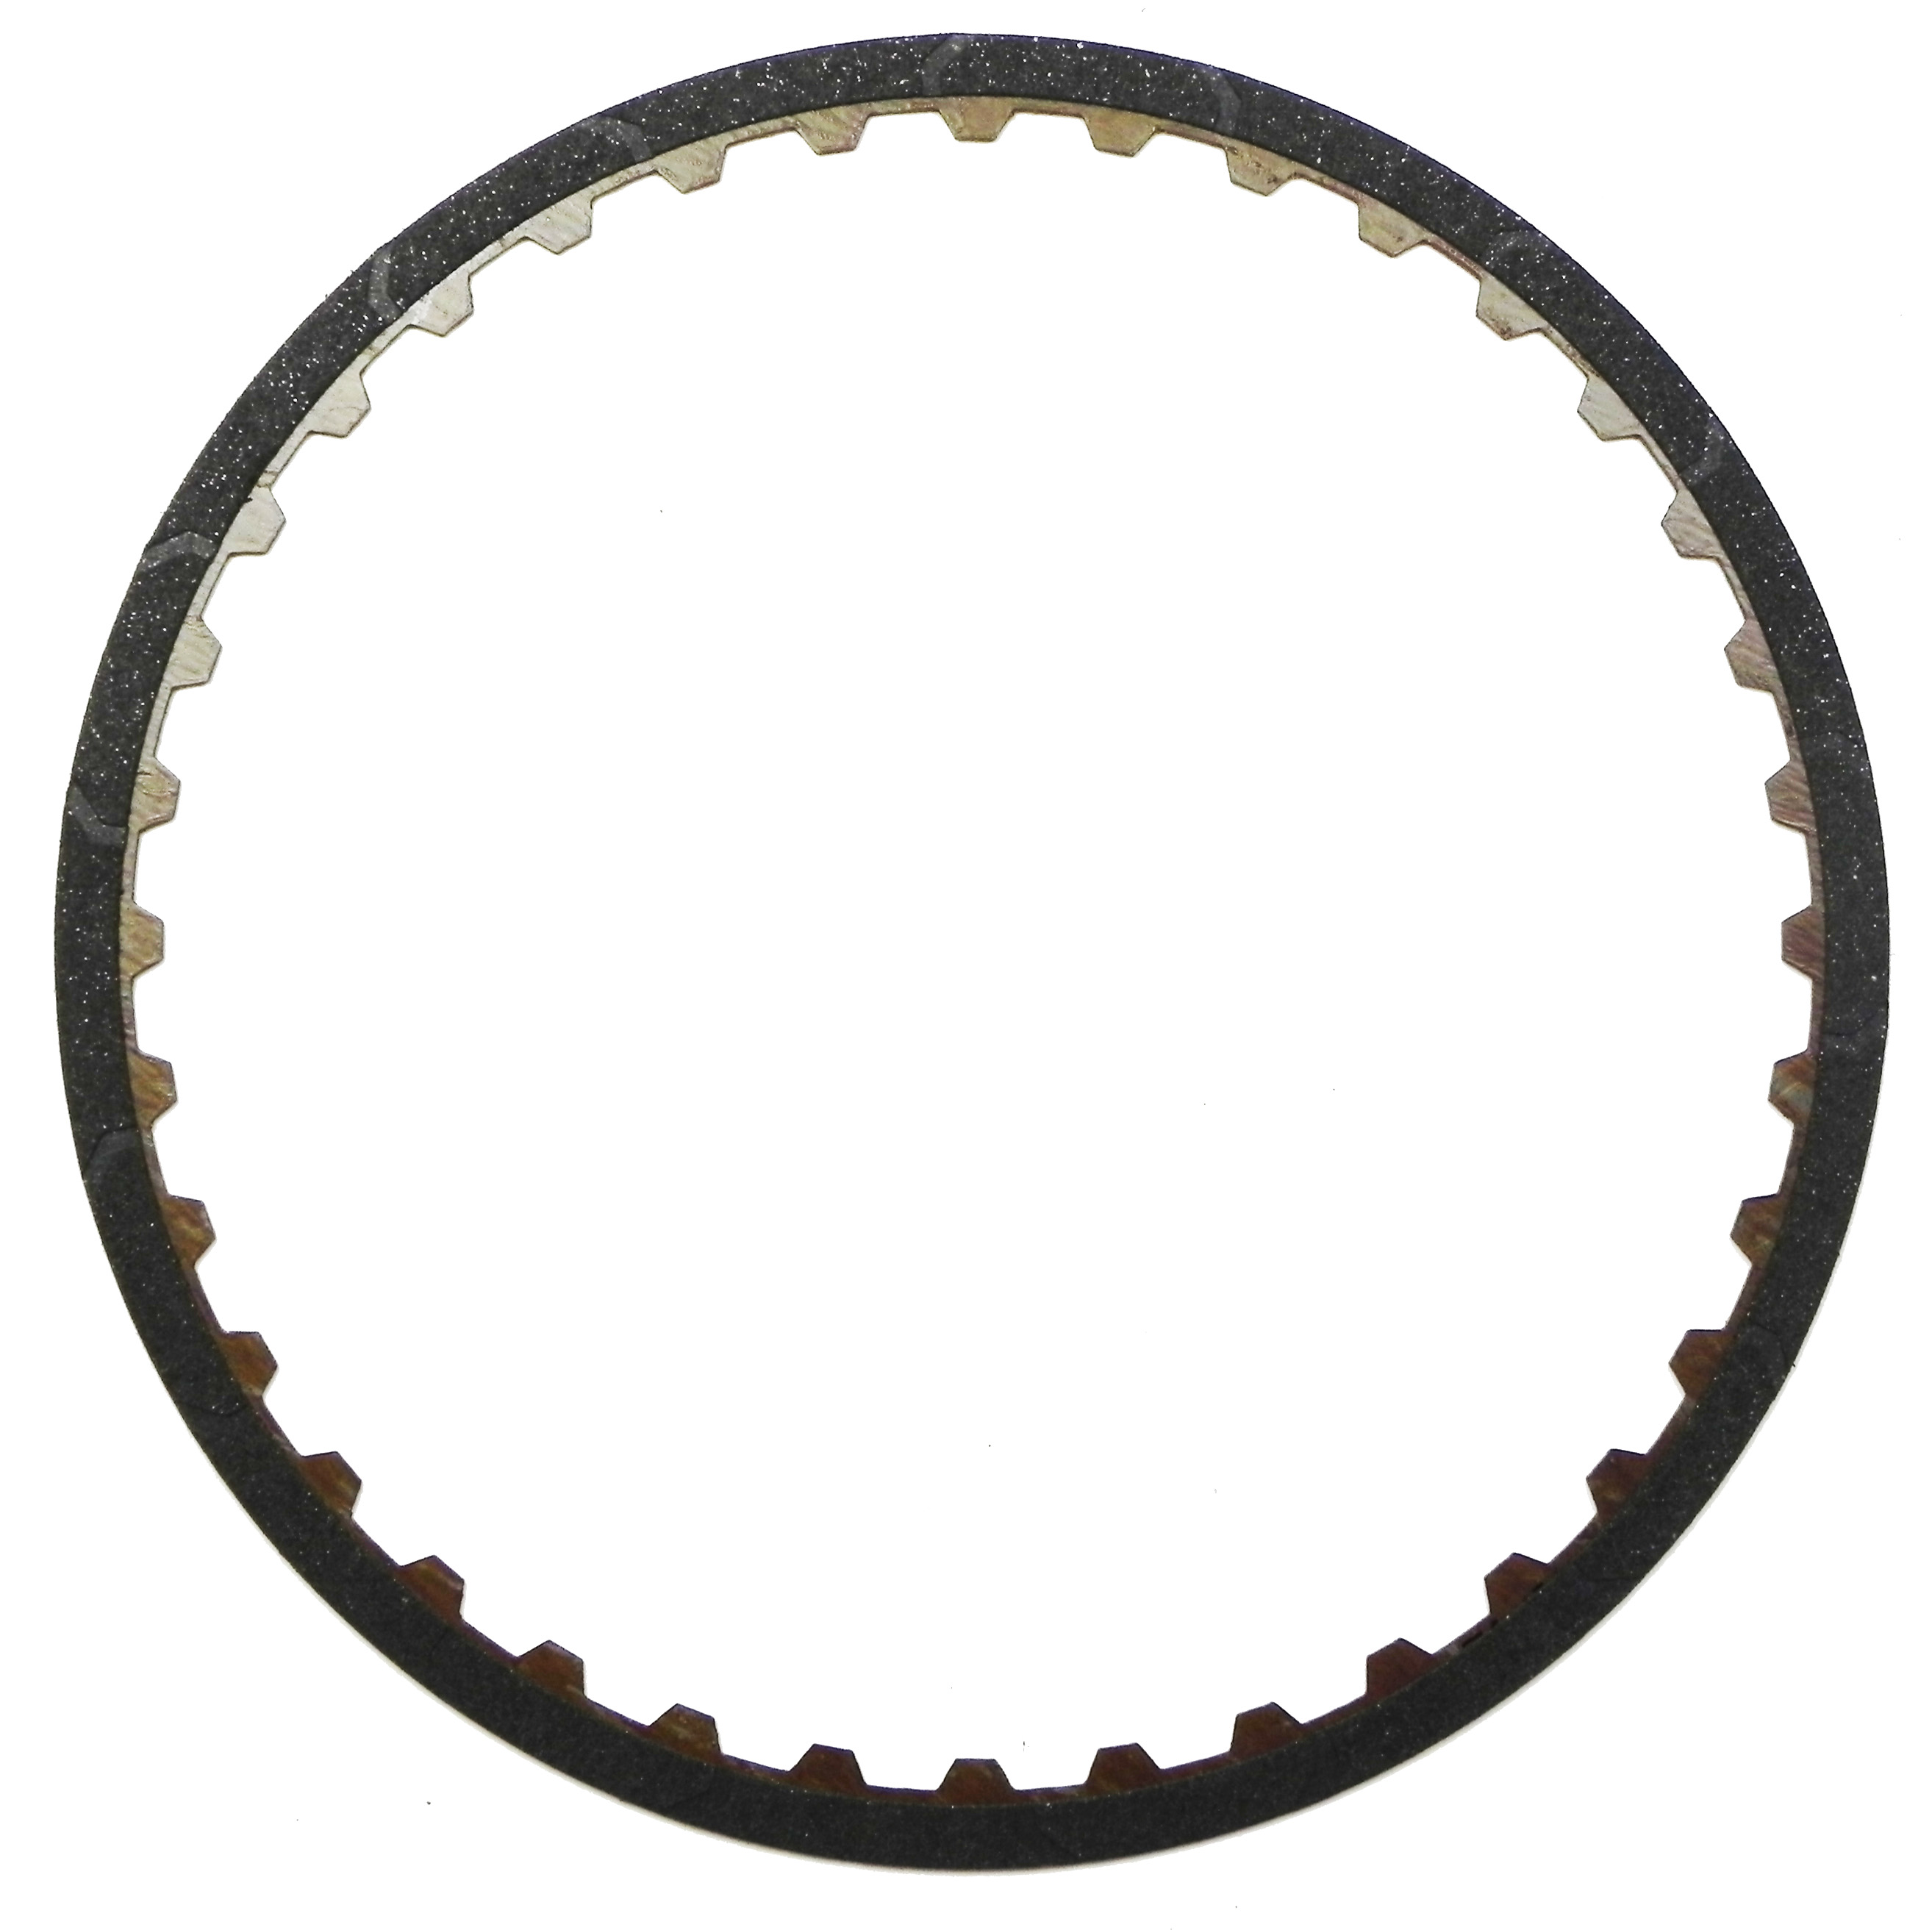 R558475 | 1999-ON Friction Clutch Plate High Energy 2nd, Coast, Single Sided, ID Spline, BMW X-3, X-5 Only High Energy